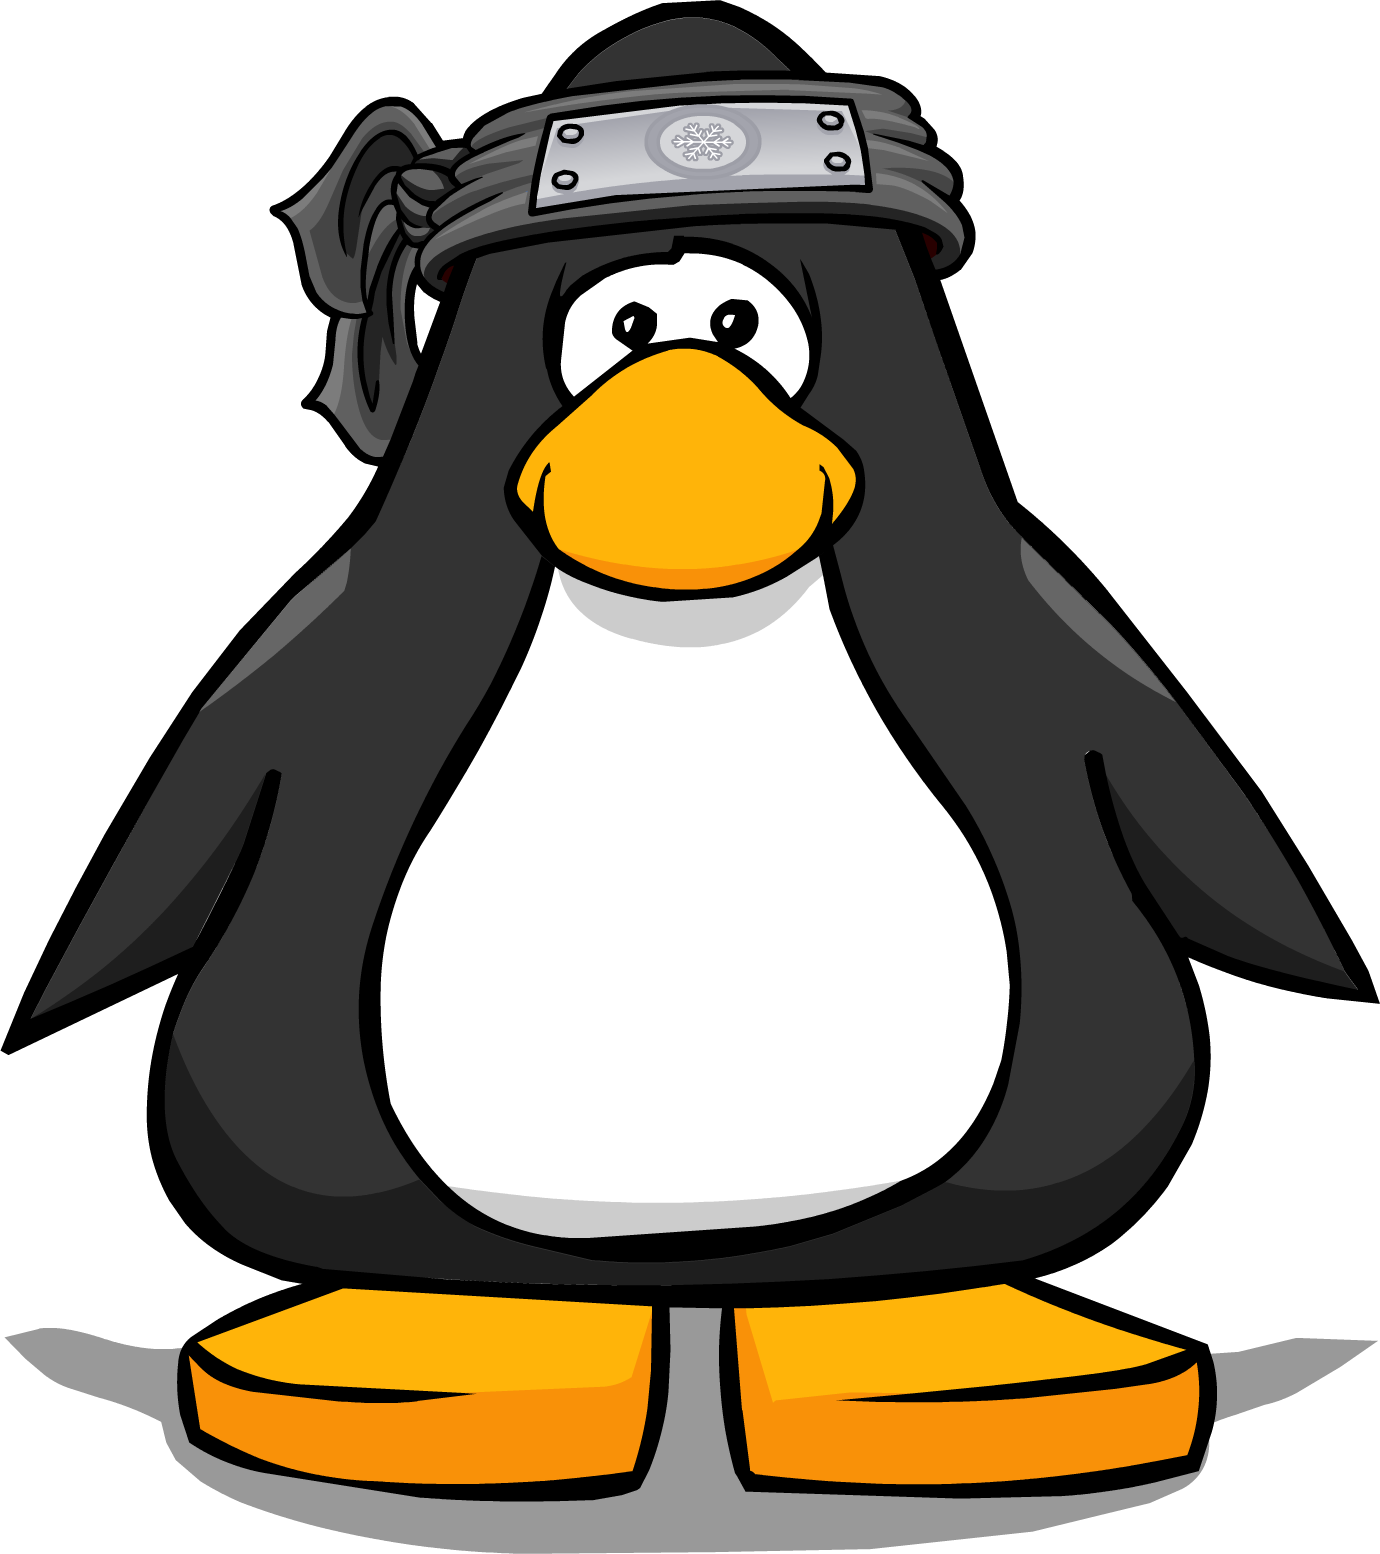 Clipart doctor headband. Image black ice from